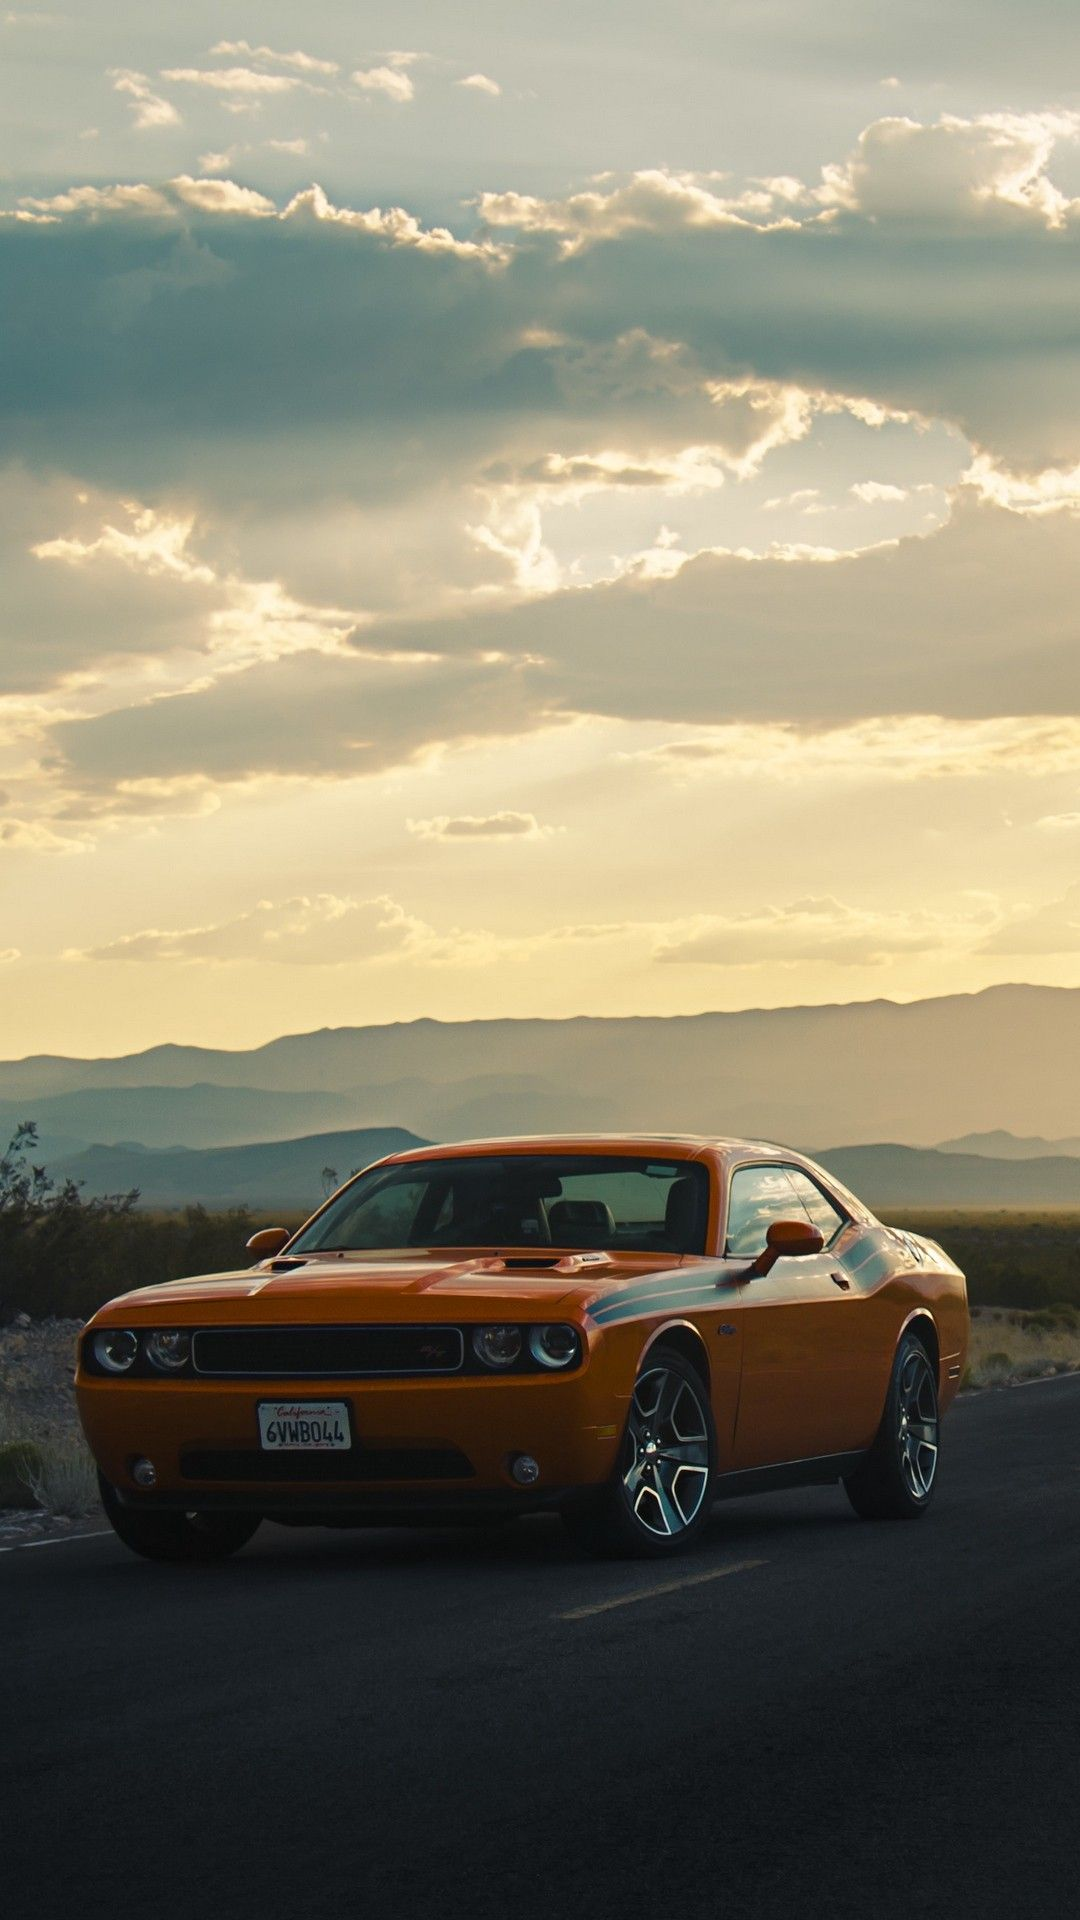 Cars Mobile Full Hd Wallpapers 1080x1920 In 2021 Dodge Challenger Car Iphone Wallpaper Car Wallpapers